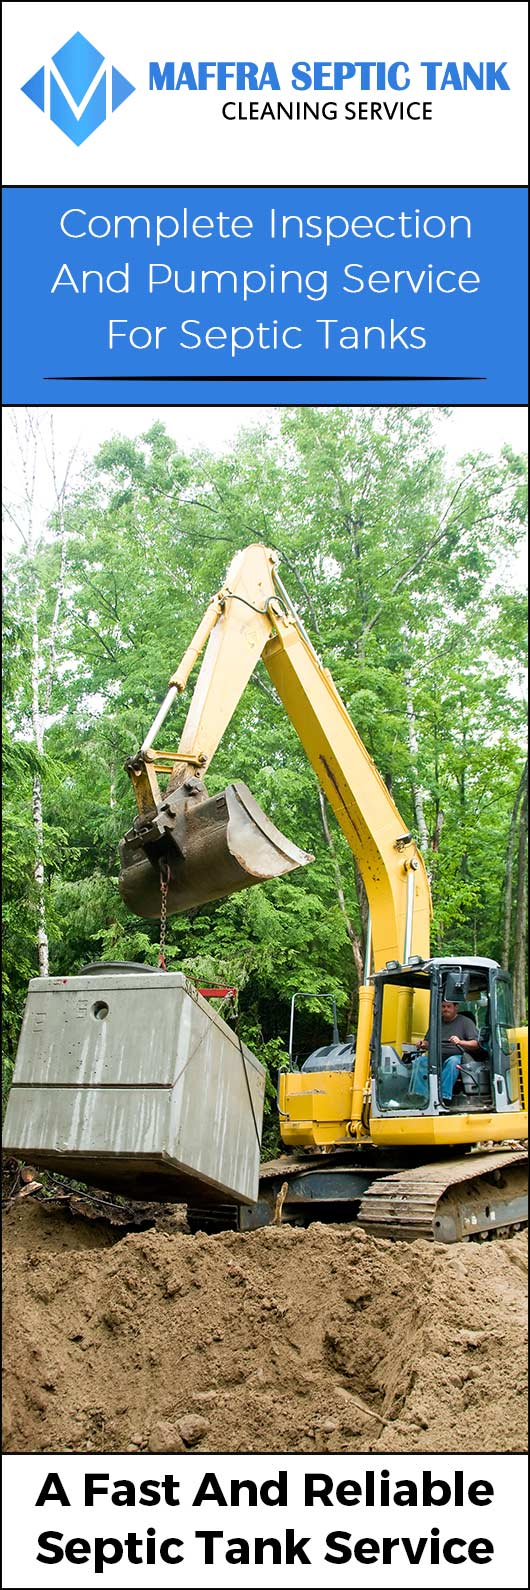 Maffra Septic Tank Cleaning Service - Septic Tank Cleaning